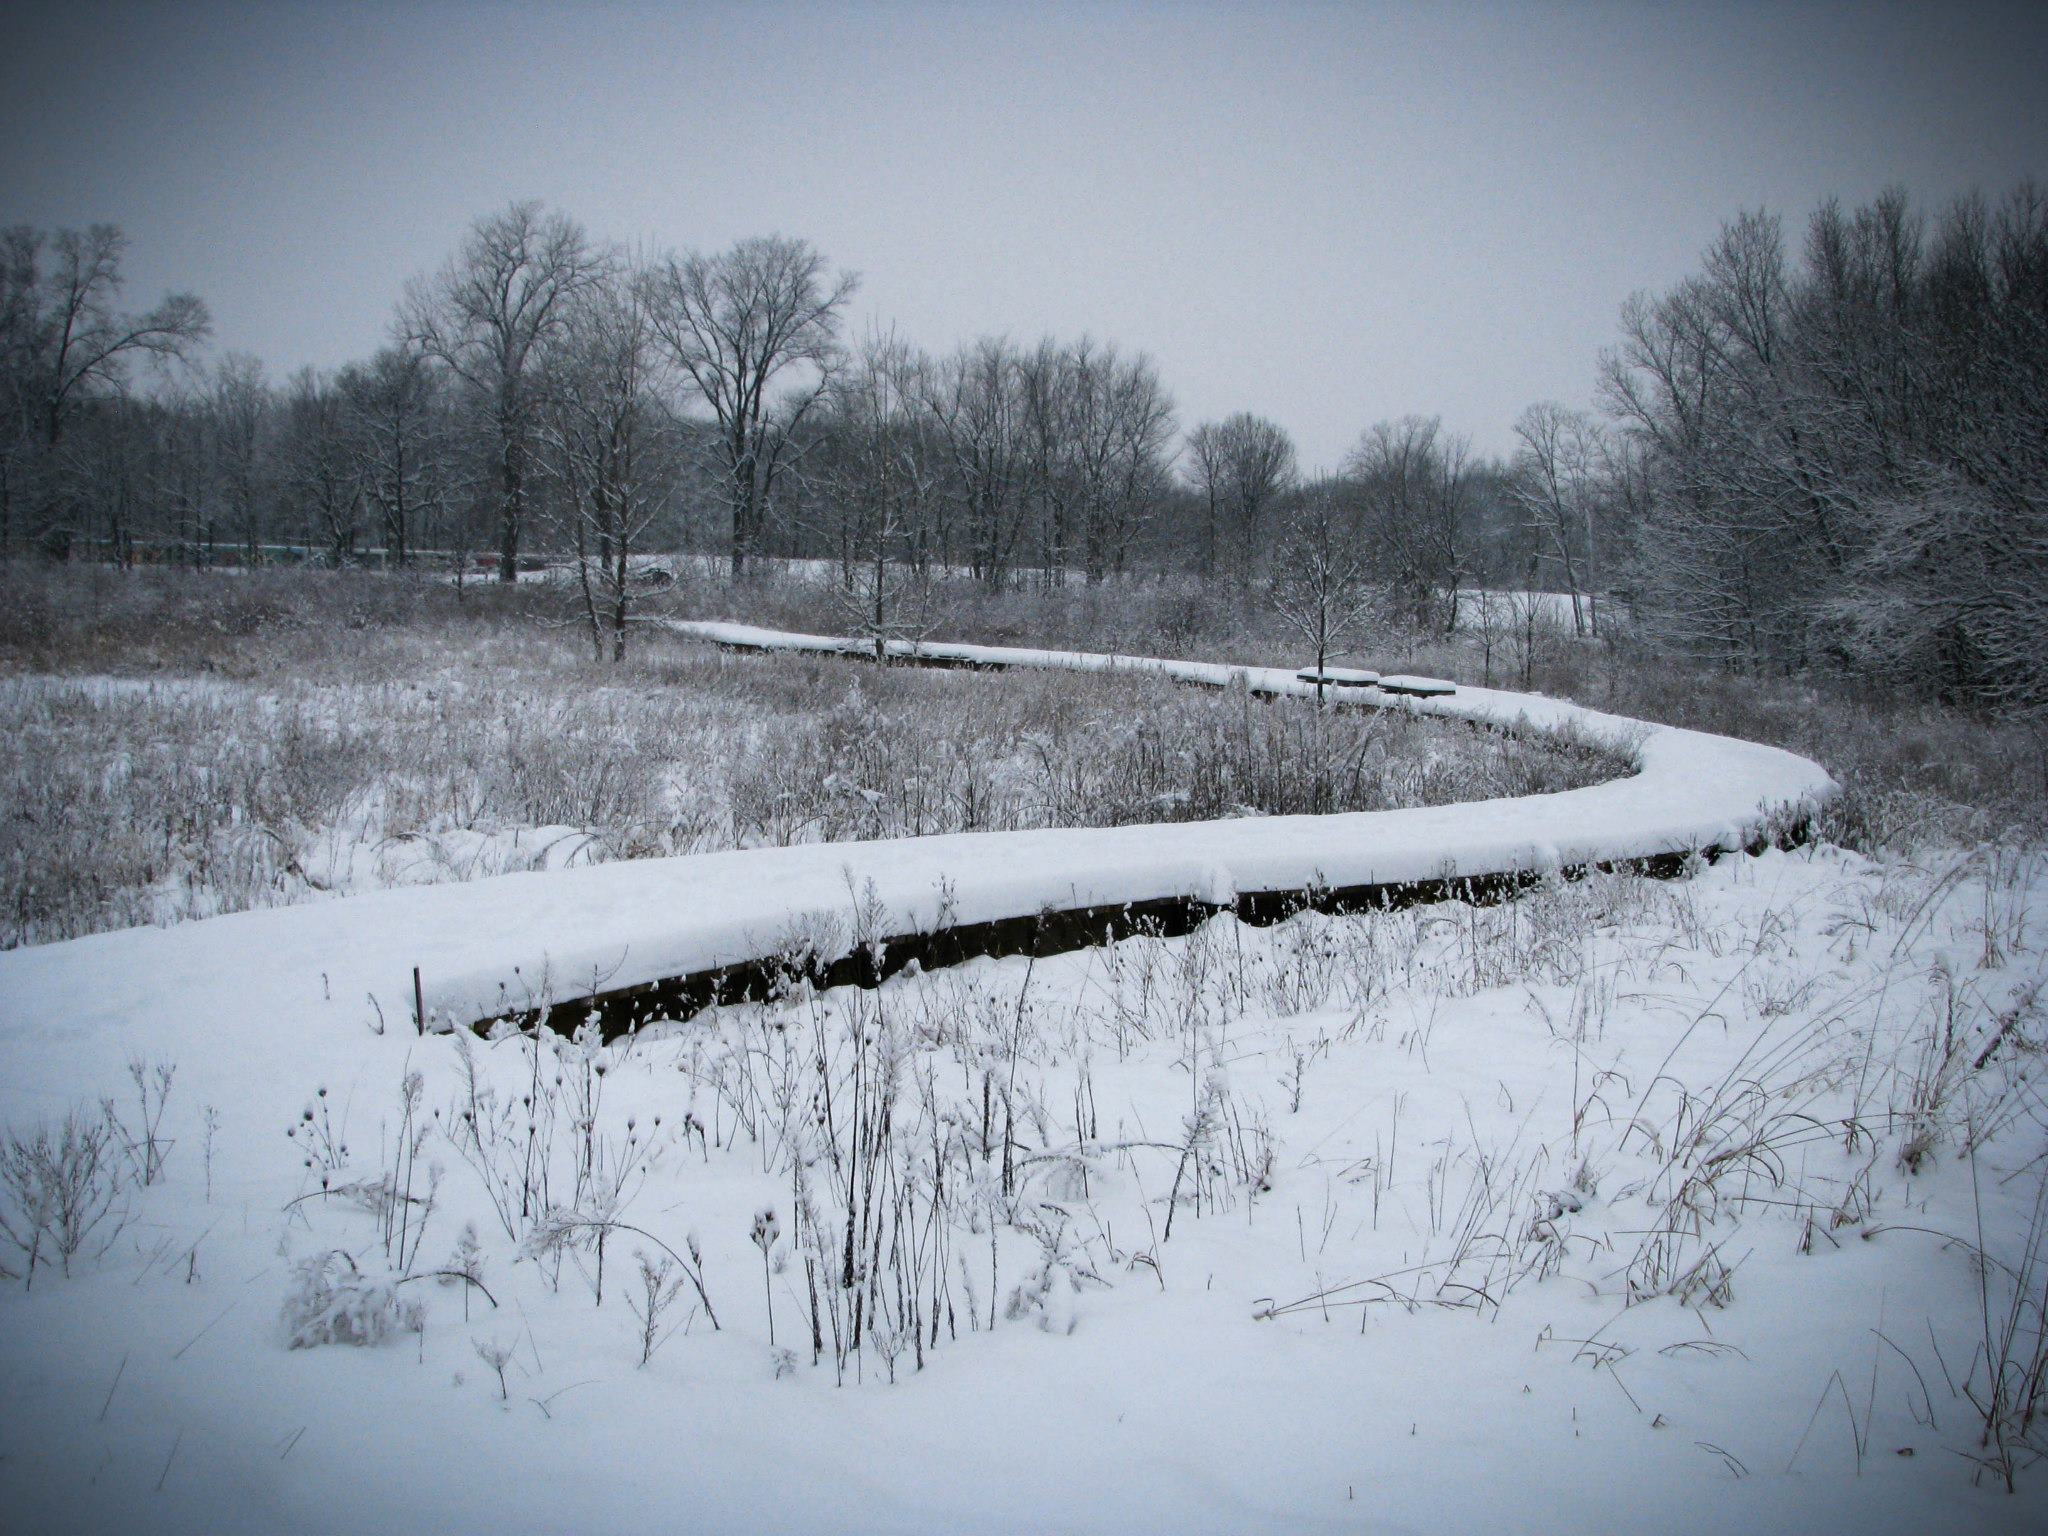 A Visit to a Snowy John Craddock Wetlands Nature Preserve